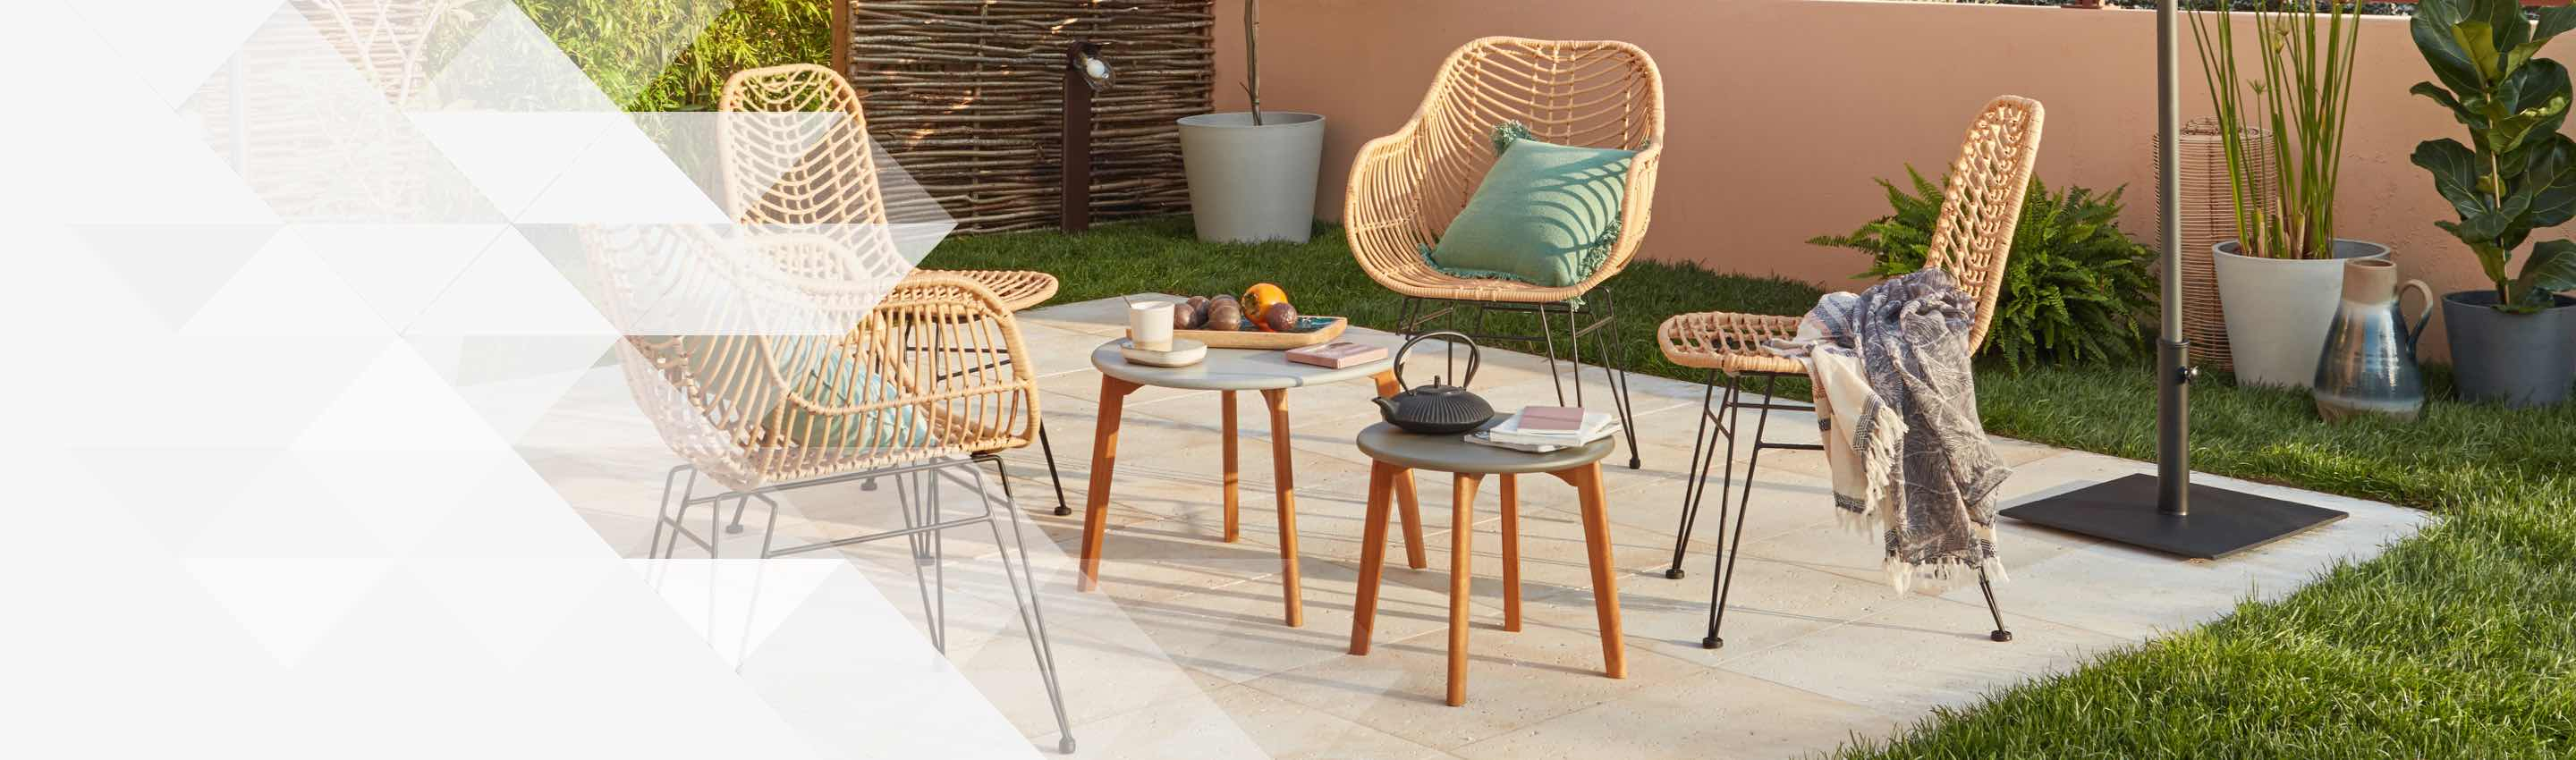 Salon De Jardin Pvc Gris Salon De Jardin Table Et Chaise Mobilier De Jardin Leroy Merlin